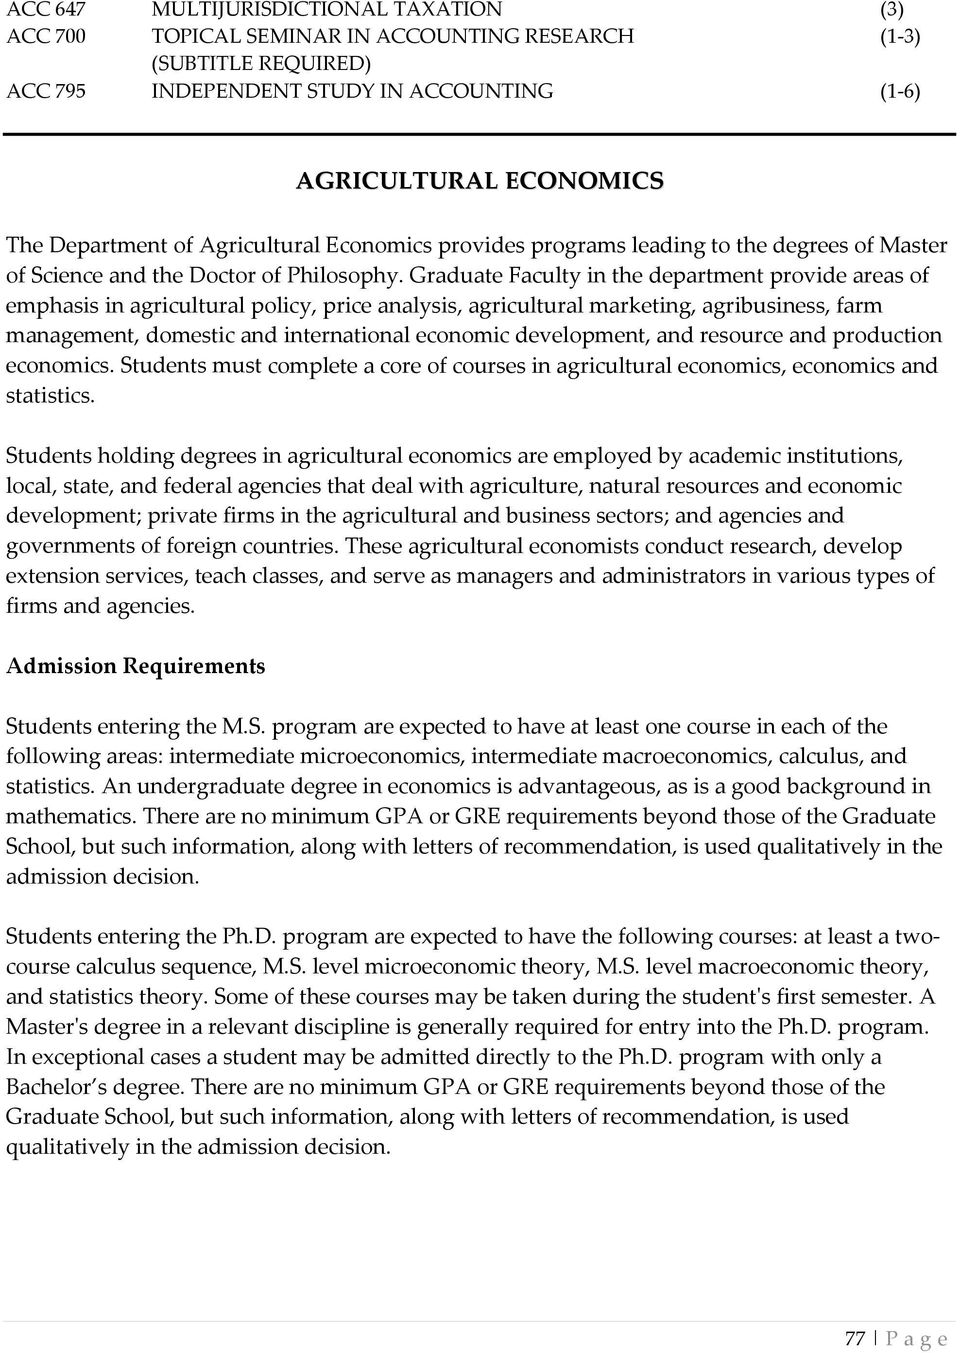 Graduate Faculty in the department provide areas of emphasis in agricultural policy, price analysis, agricultural marketing, agribusiness, farm management, domestic and international economic